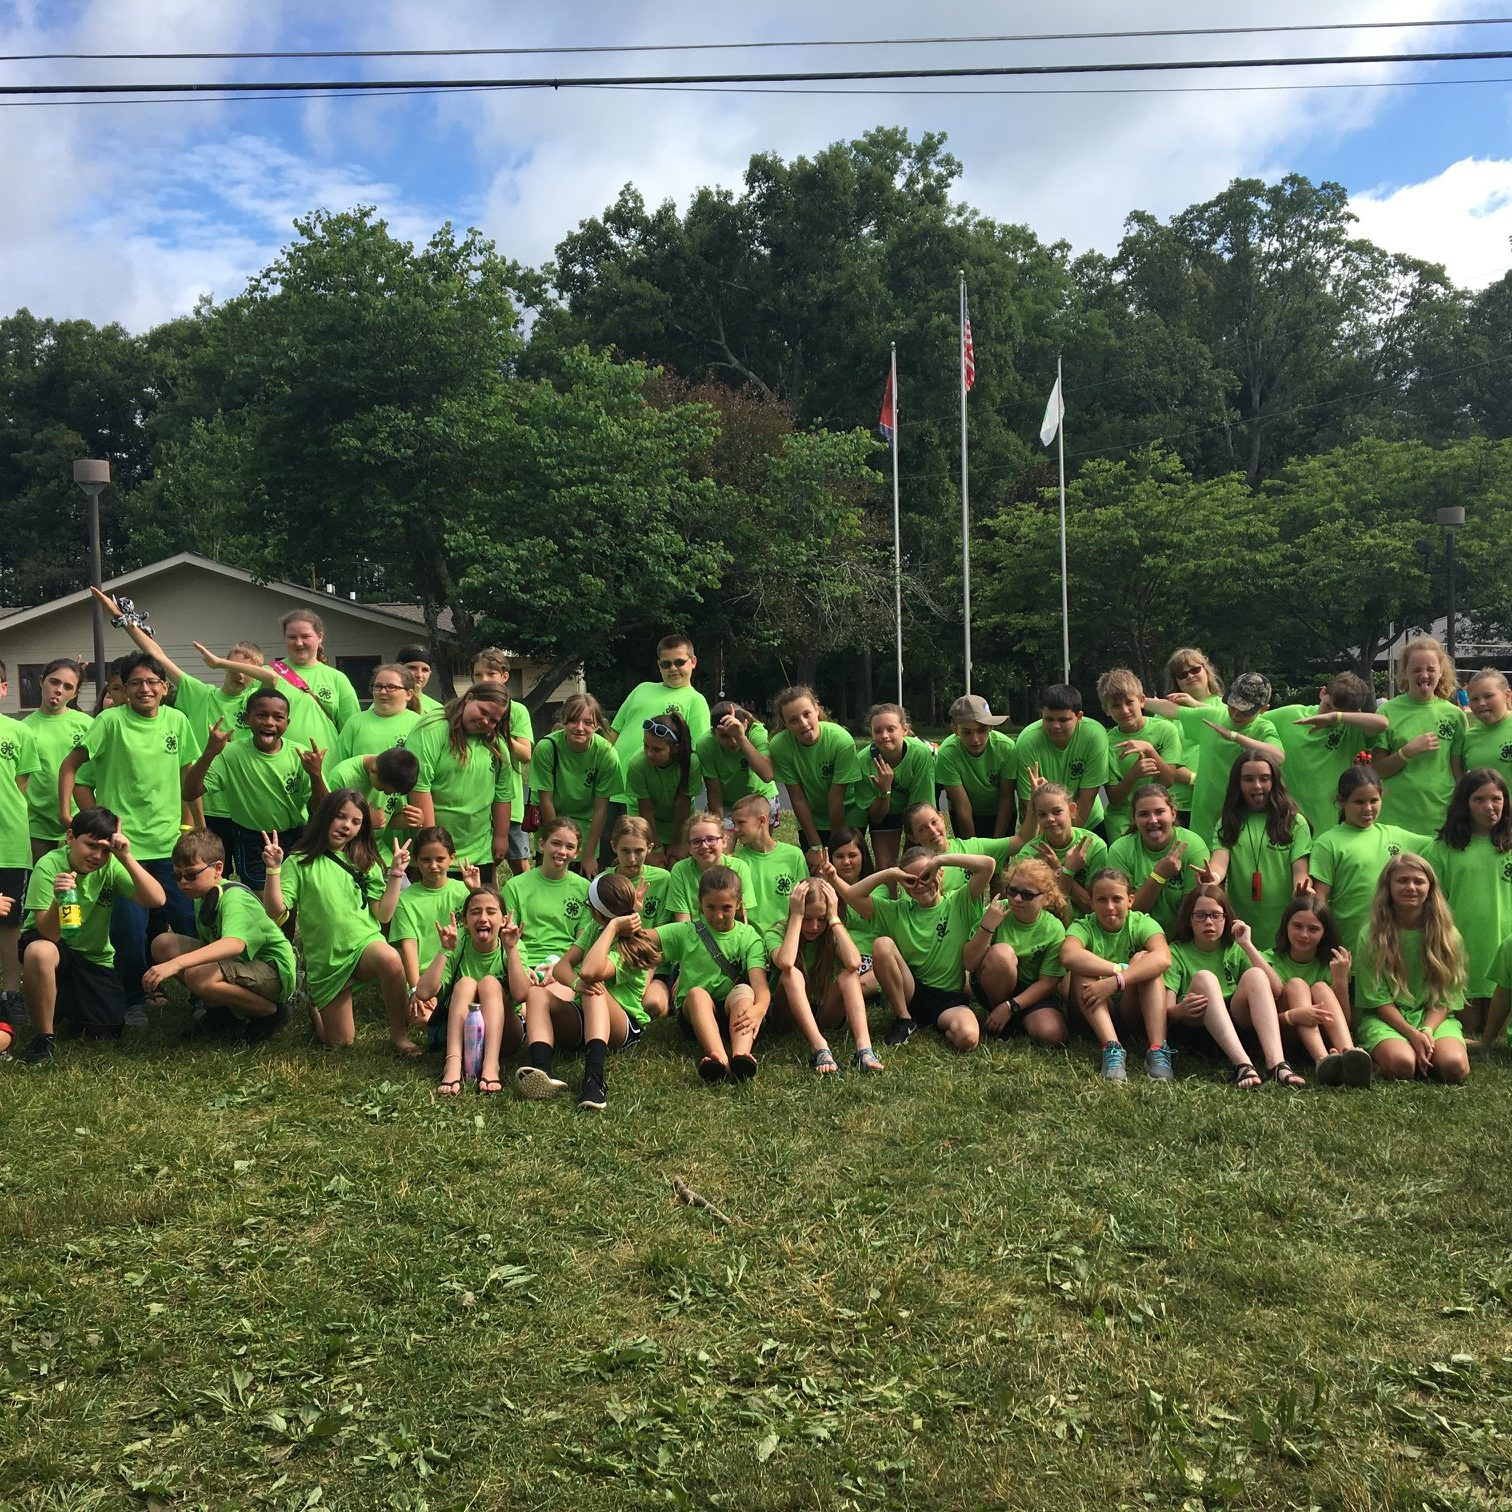 Group photo of 4-H Camp 2018